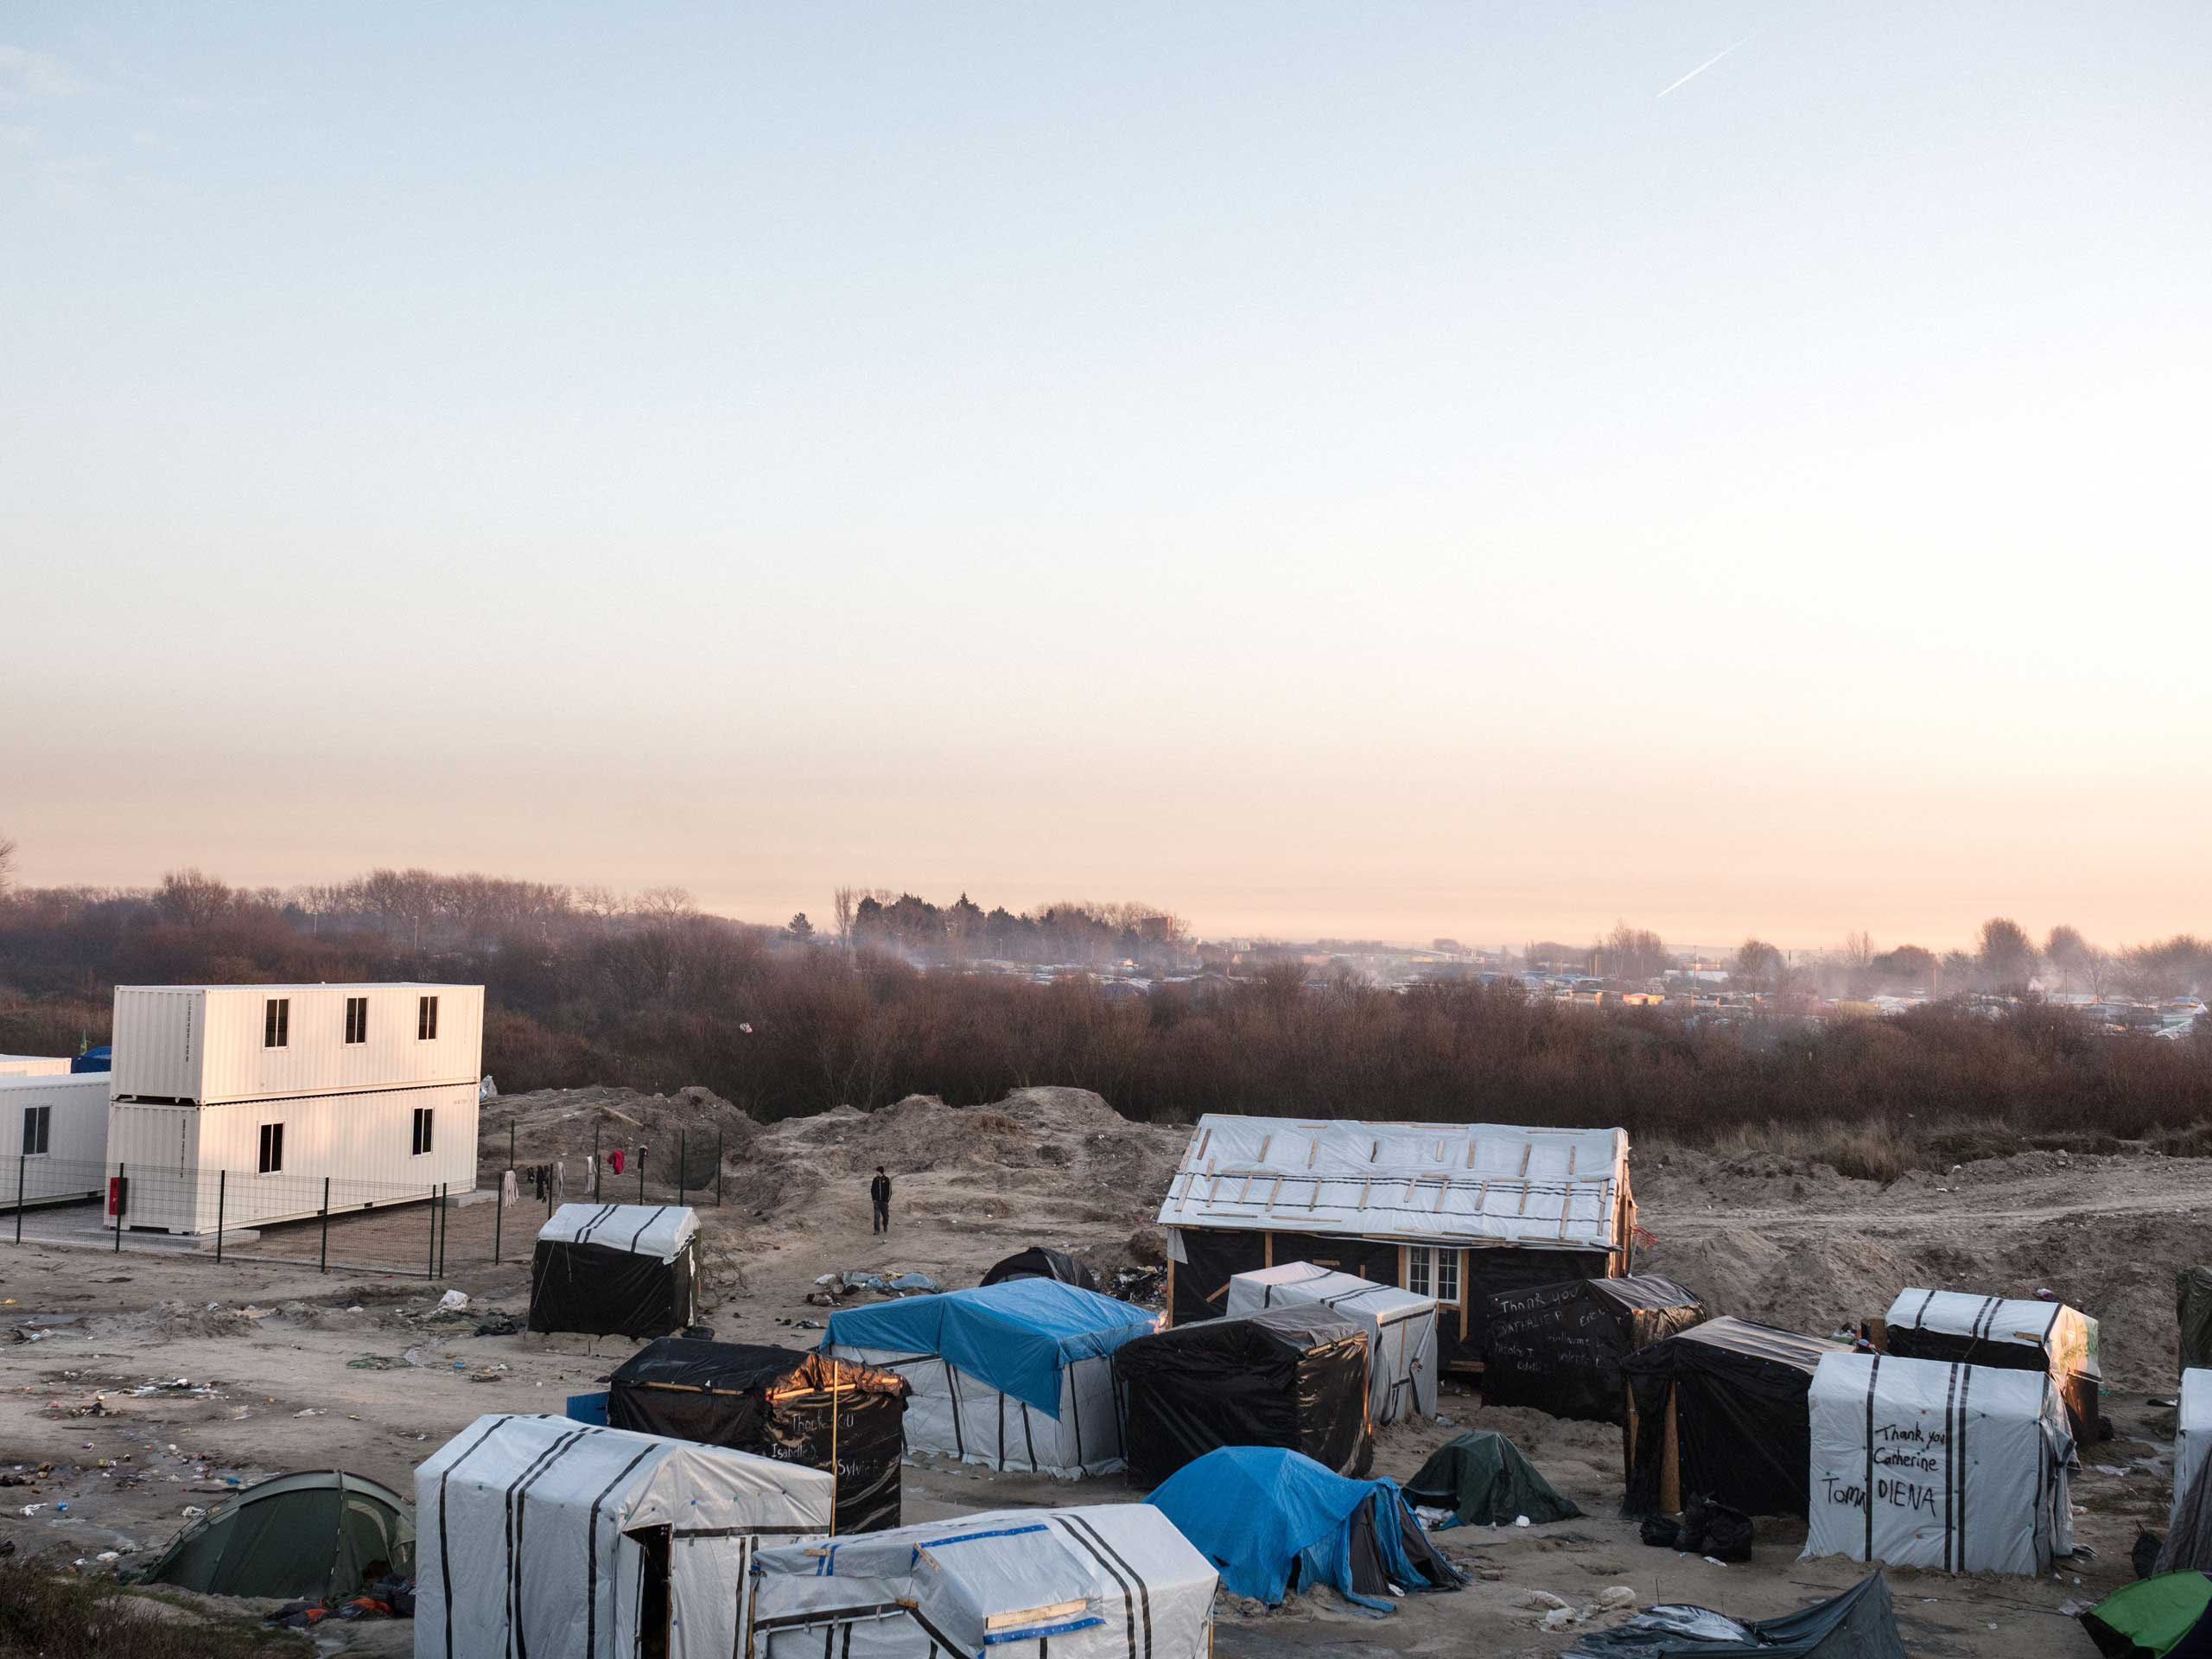 New construction  for migrants has begun in Calais, France intended to take the place of the  jungle  tent dwellings, Jan. 19, 2016.